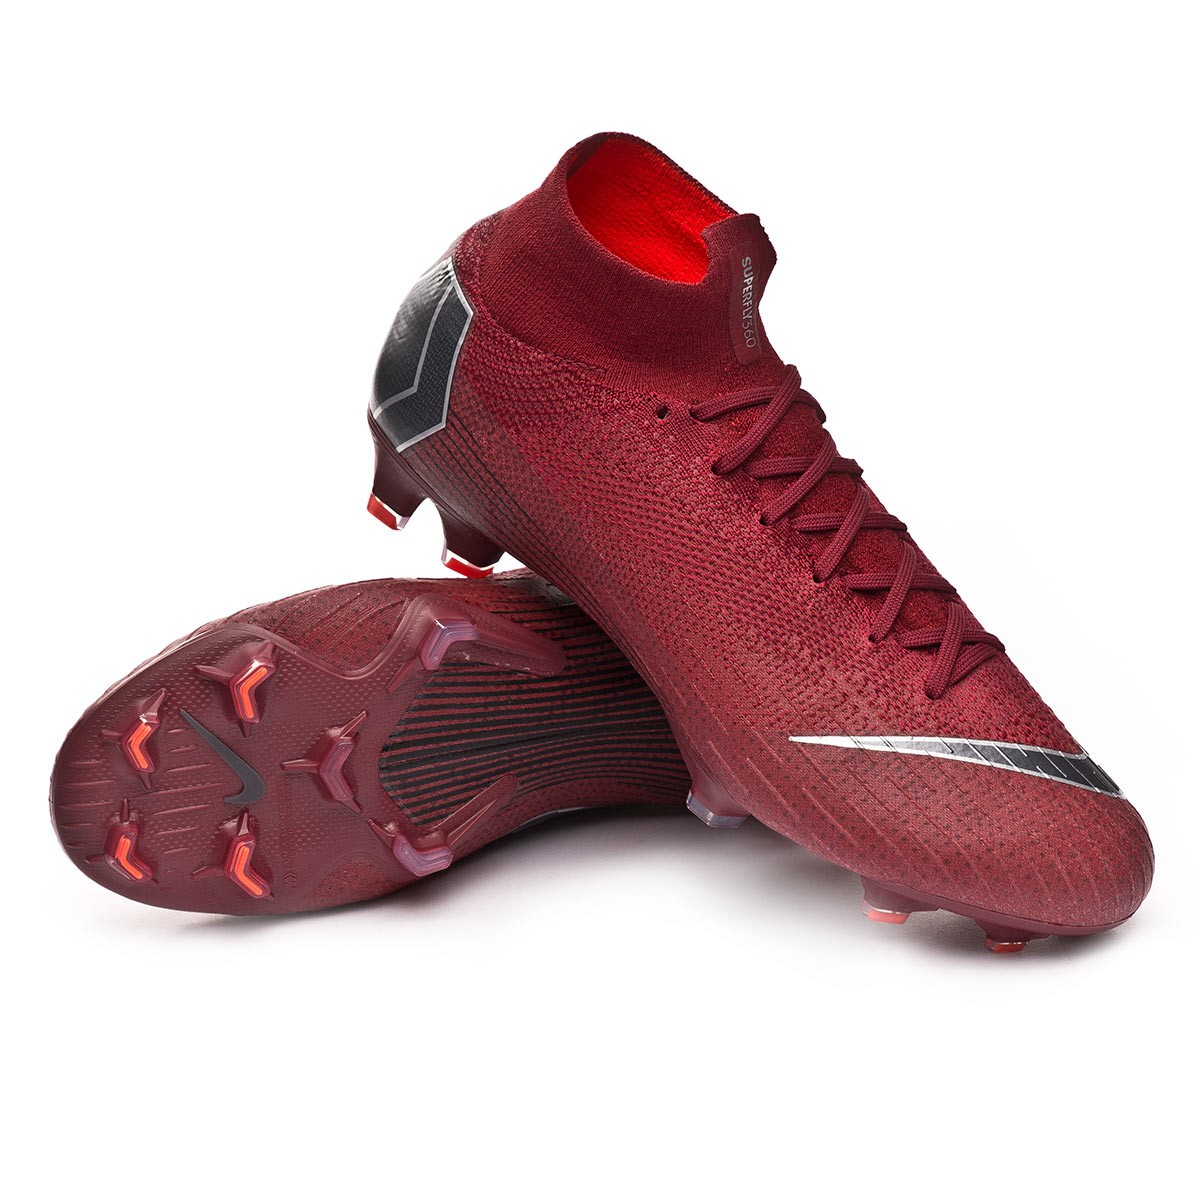 d4cf6b720b4 Football Boots Nike Mercurial Superfly VI Elite FG Team red-Metallic ...